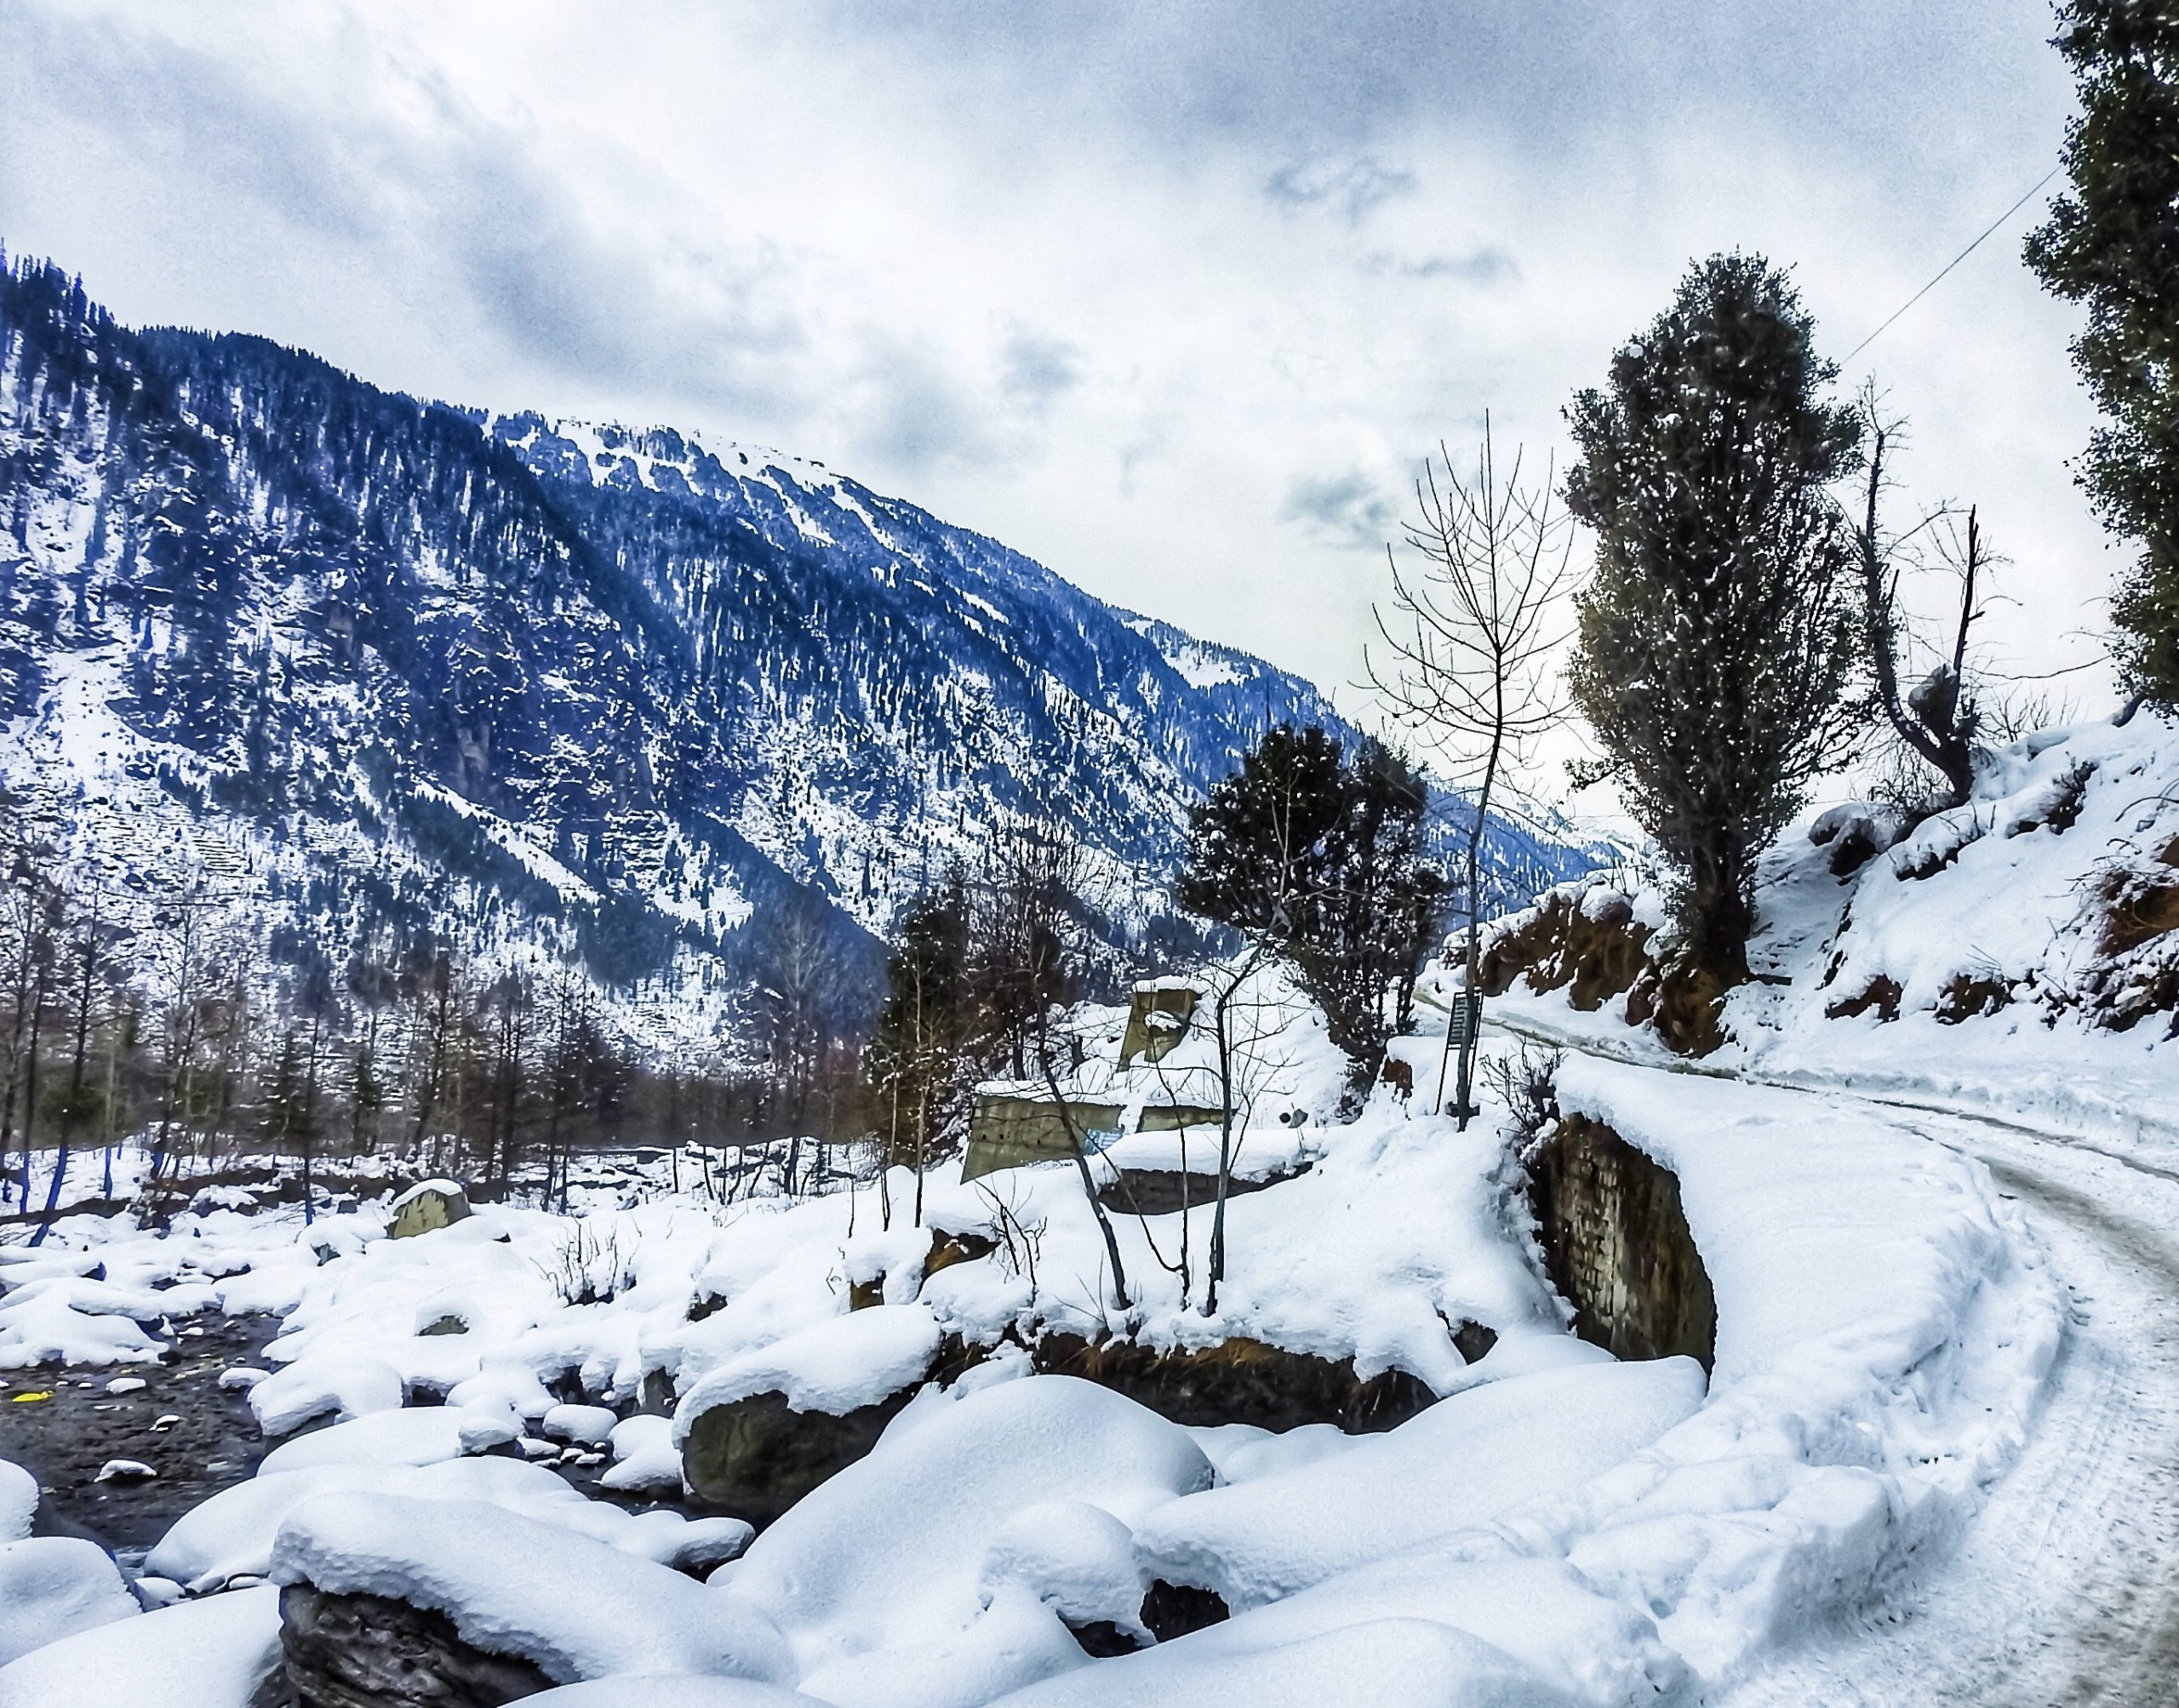 Land covered by snow